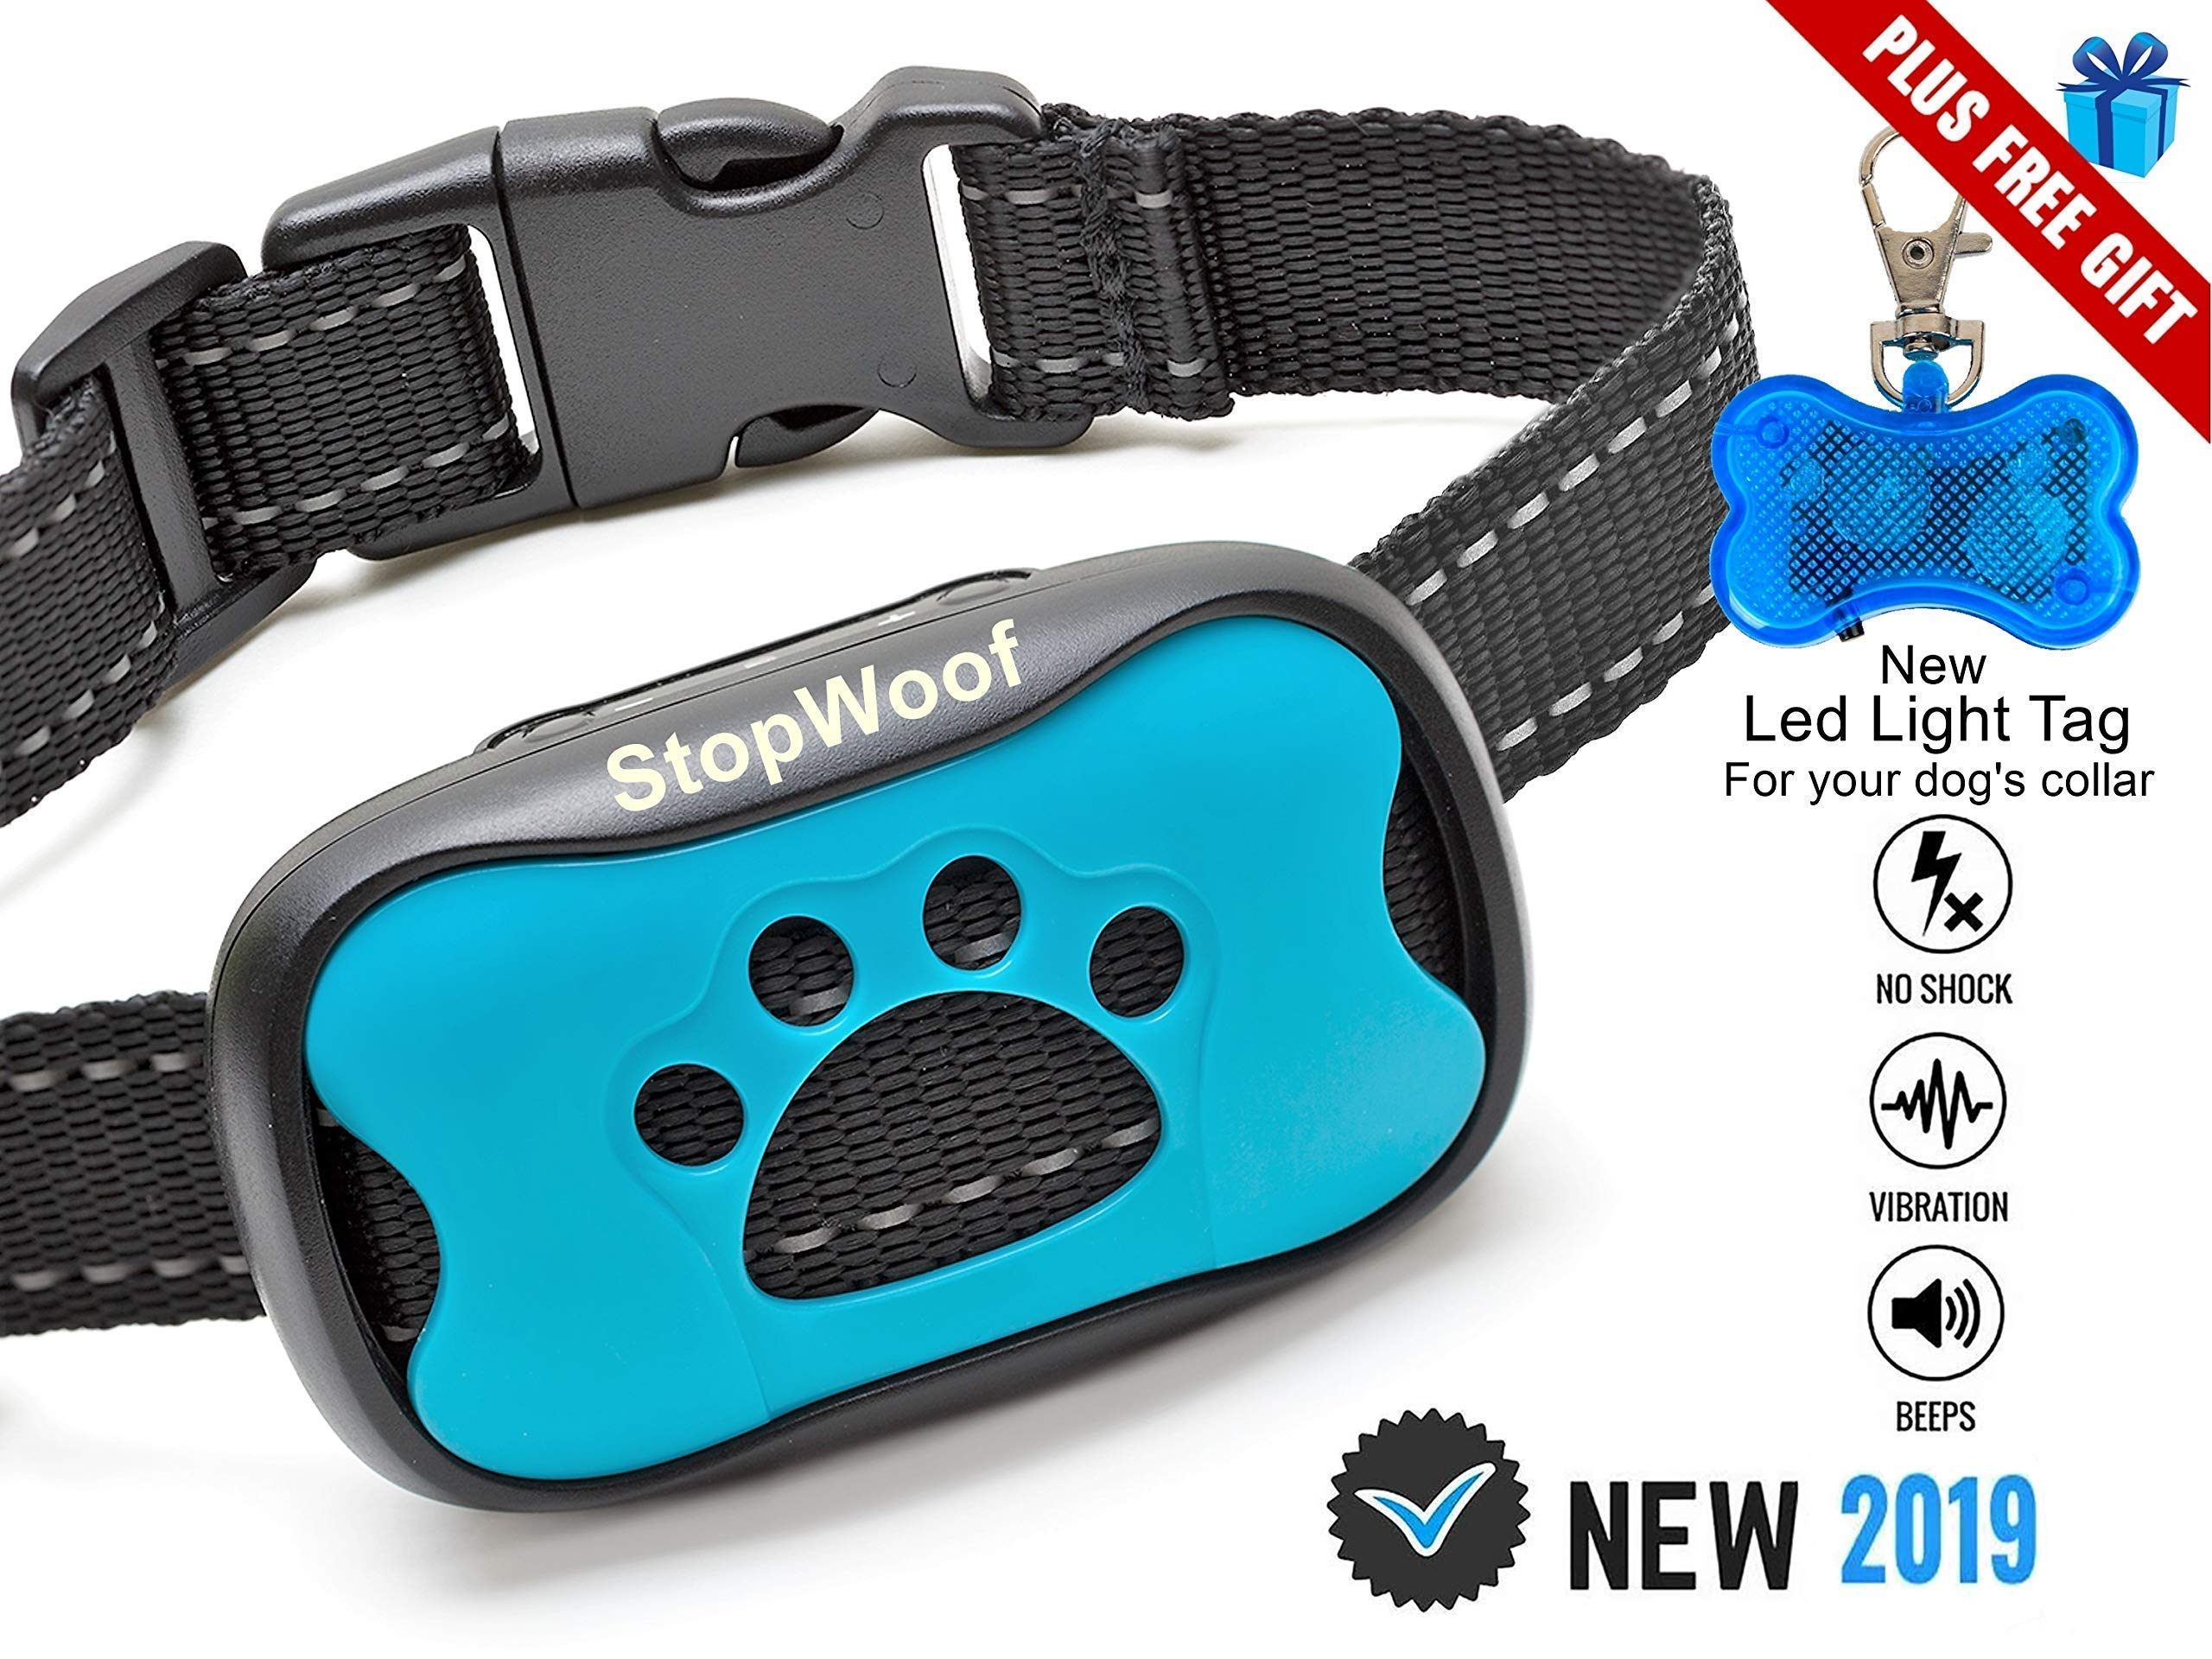 Dog Bark Collar-New Version 2019-Sound & Vibration Humane Training Collar for Small, Medium & Large Dogs- No Shock Safe Pet Waterproof Device-Free!!-New LED Light Tag! by StopWoof